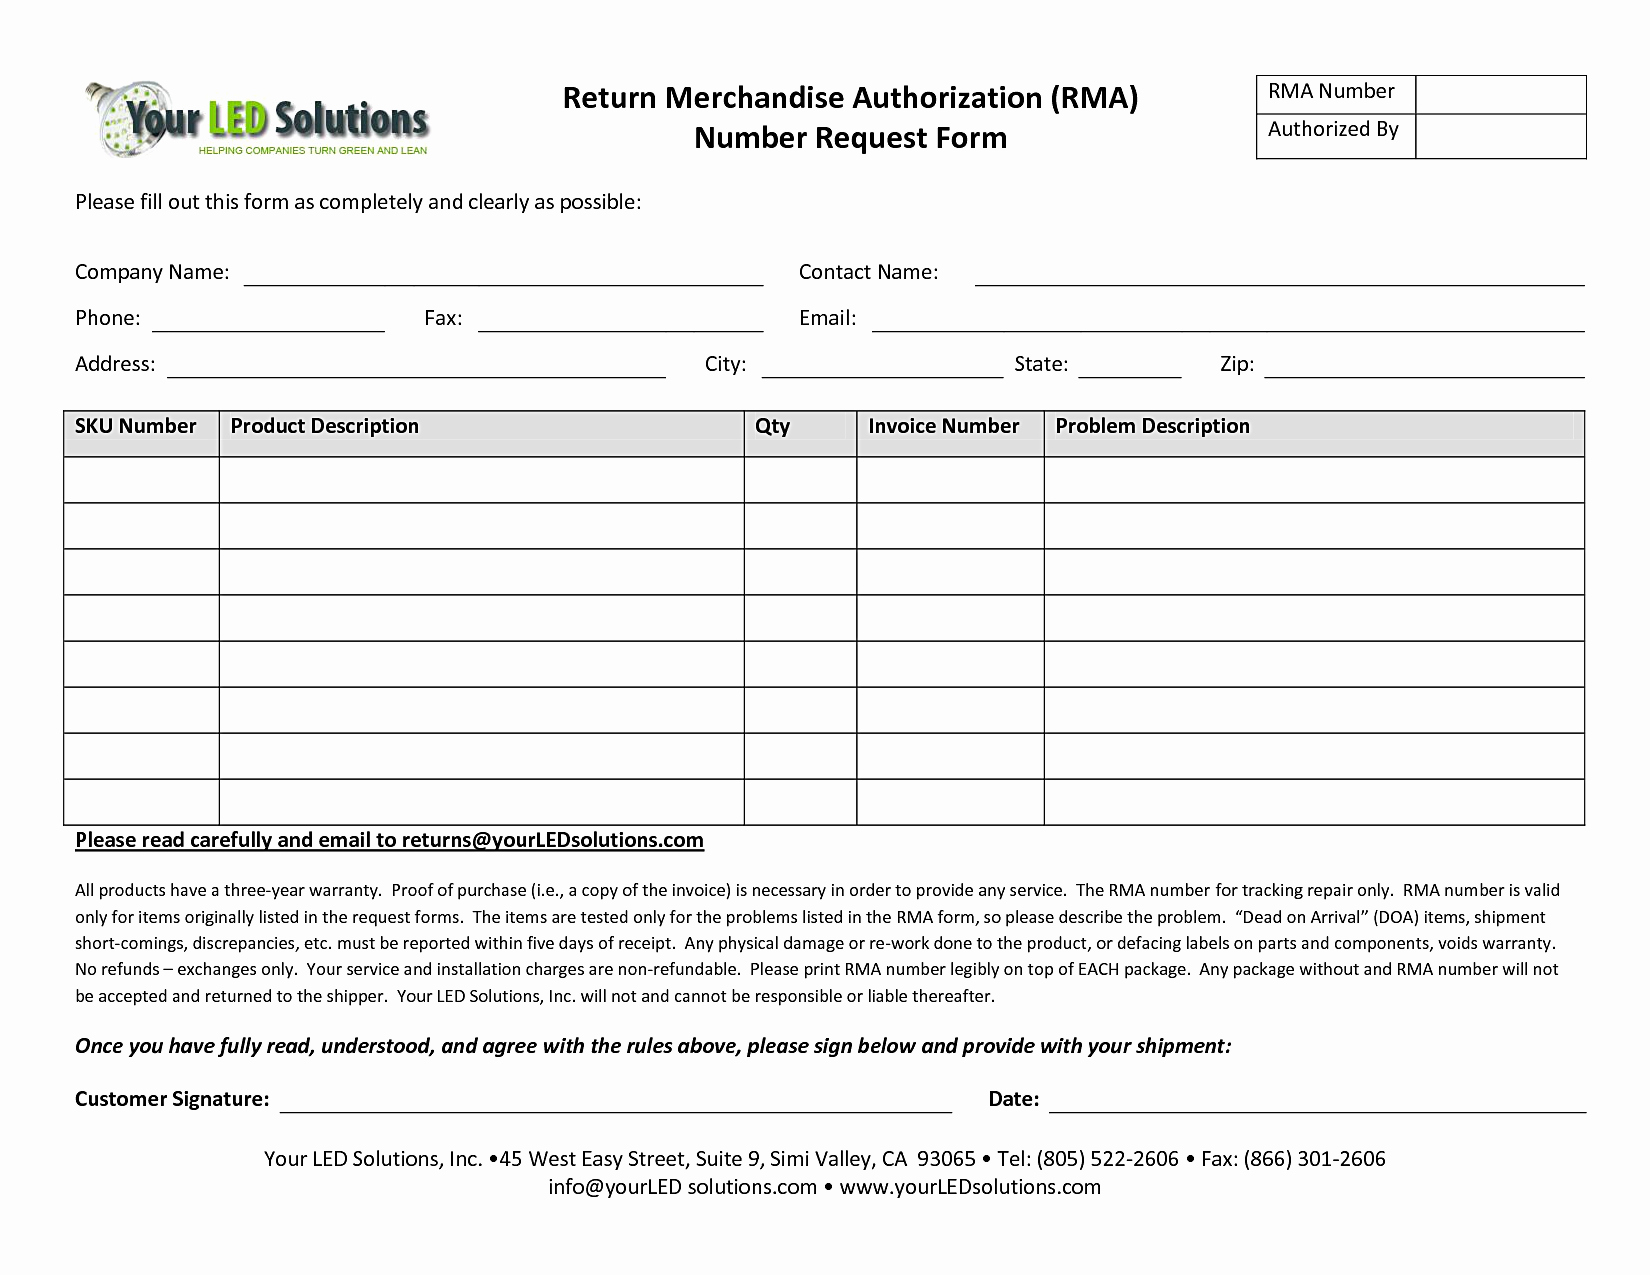 Return Authorization form Template Awesome 24 Of Return Merchandise Authorization form